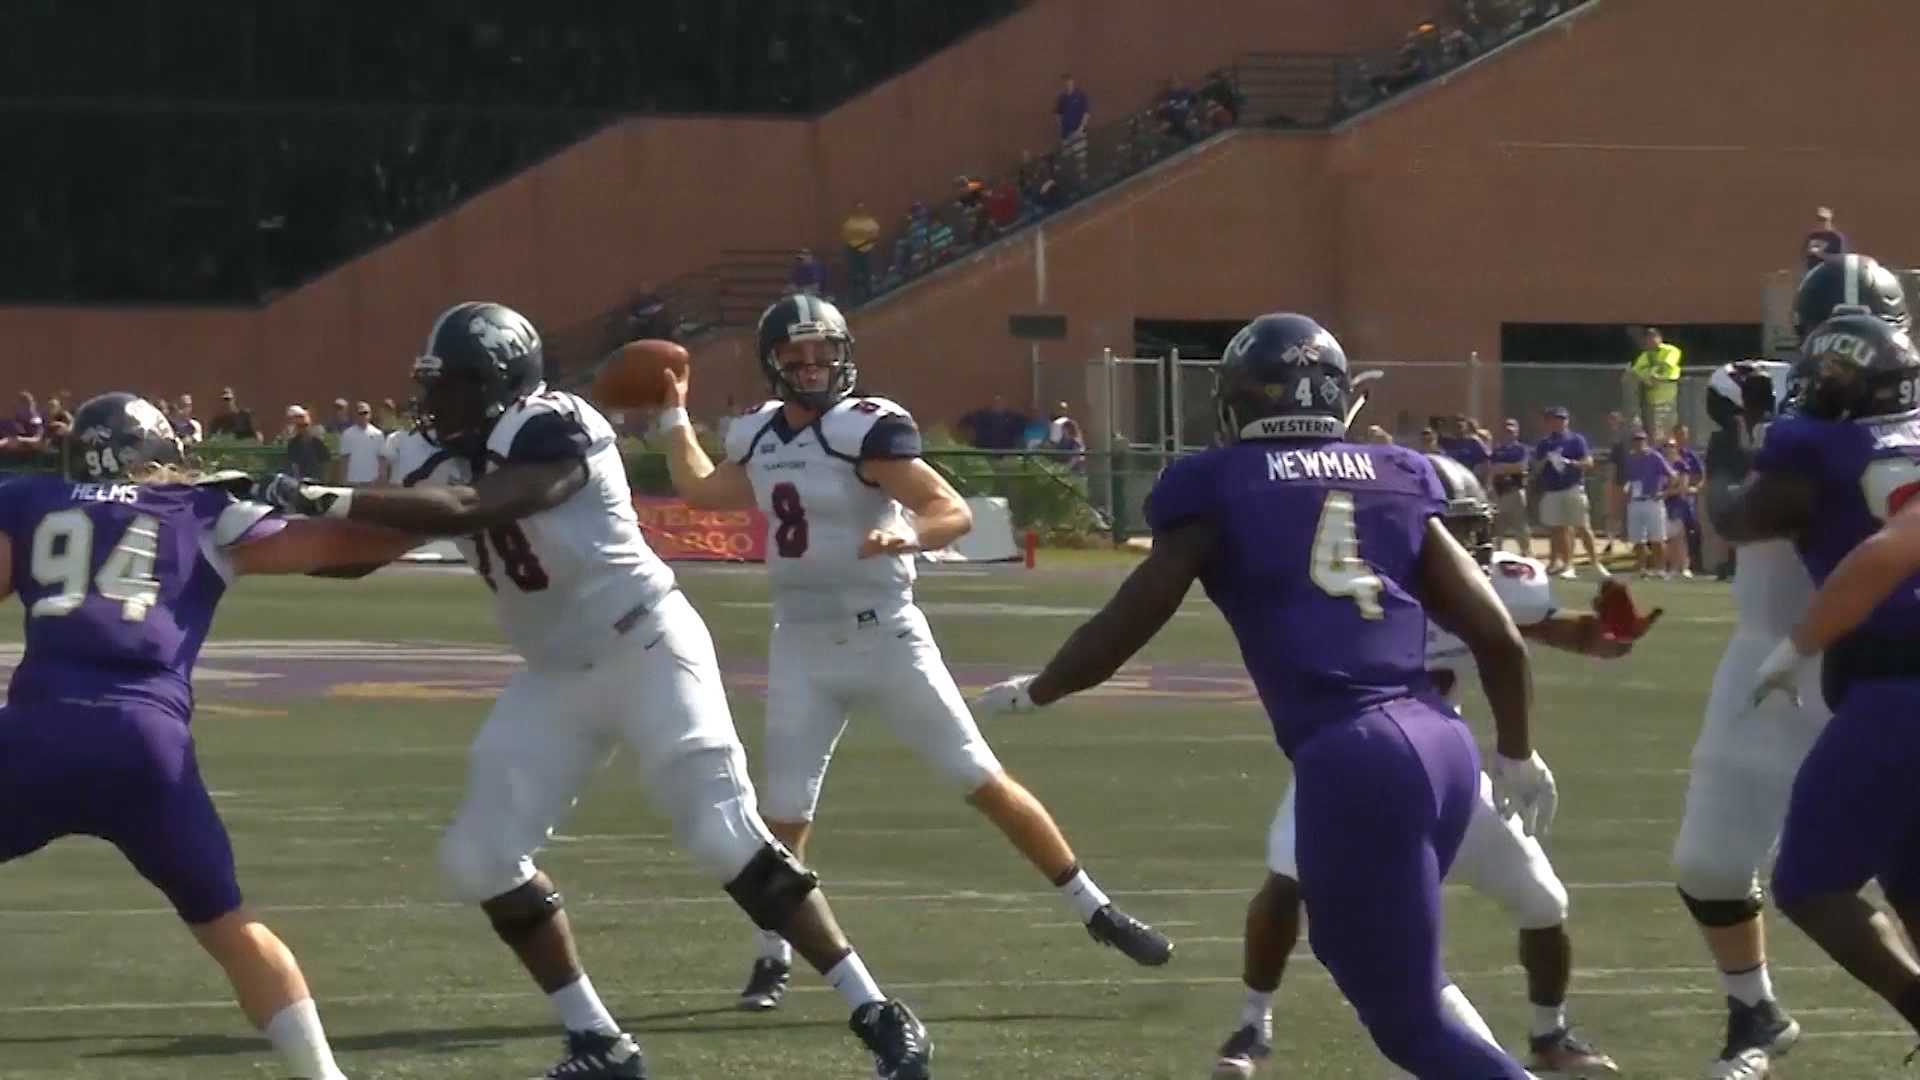 Samford QB Devlin Hodges threw for 516 yards and four touchdowns in the lost to Western Carolina on Saturday, Sept. 23, 2017.